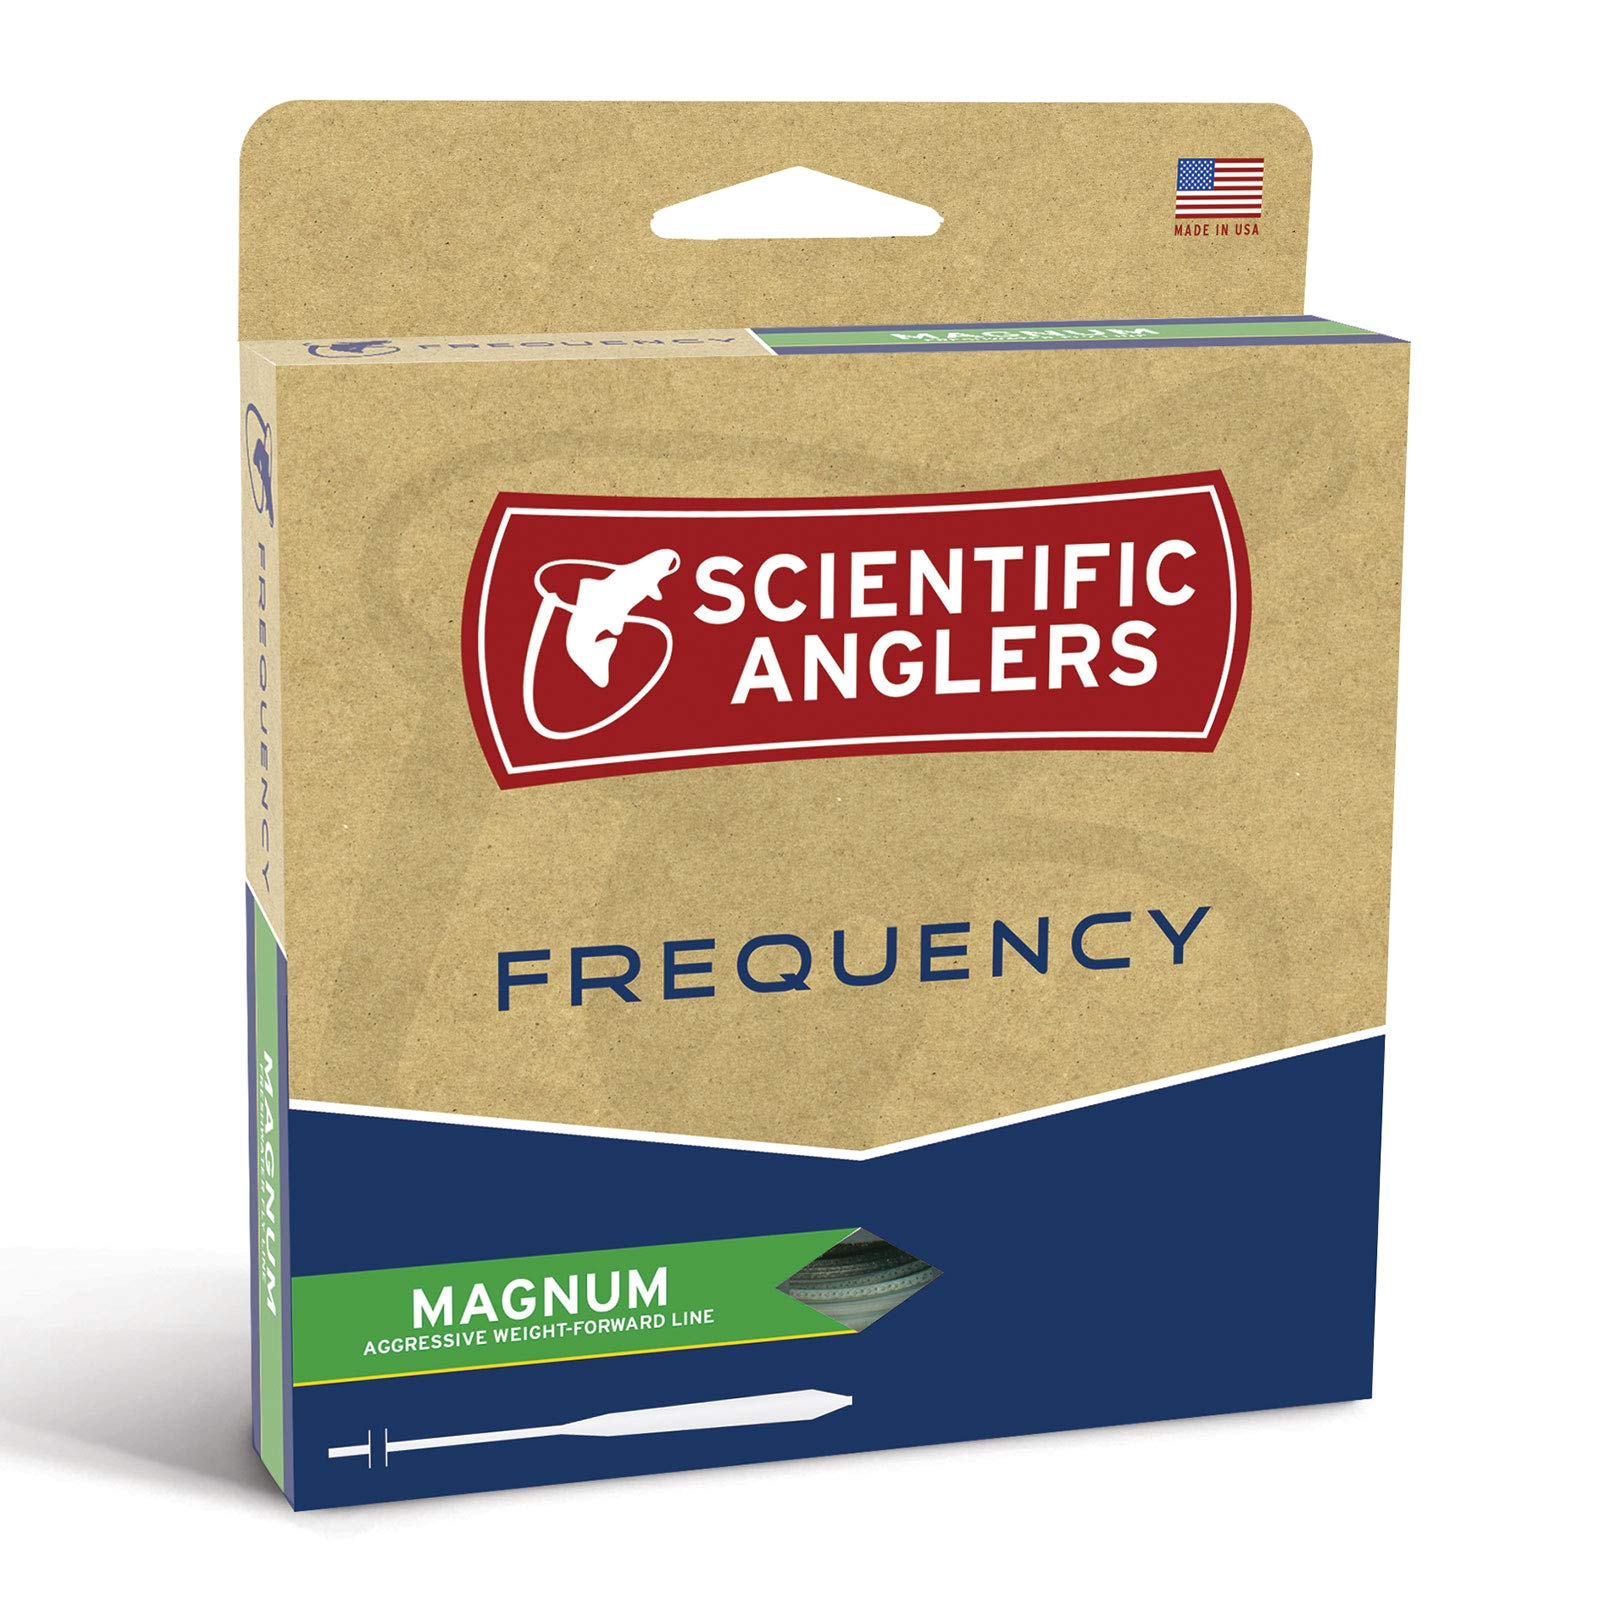 Scientific Anglers Frequency Magnum with Loop, Mist Green, WF- 9-F